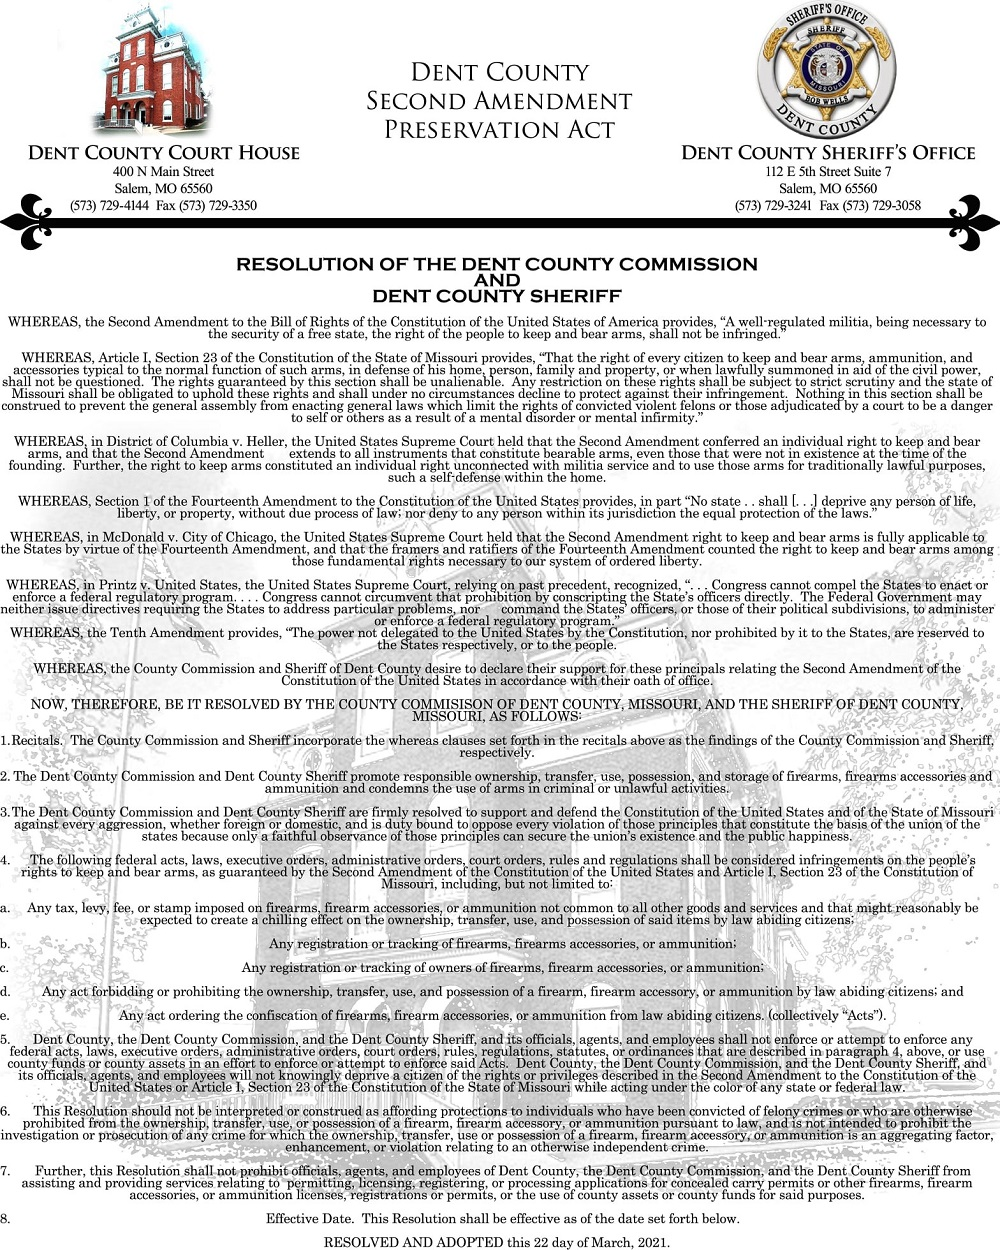 Dent County Second Amendment Preservation Act Page 1